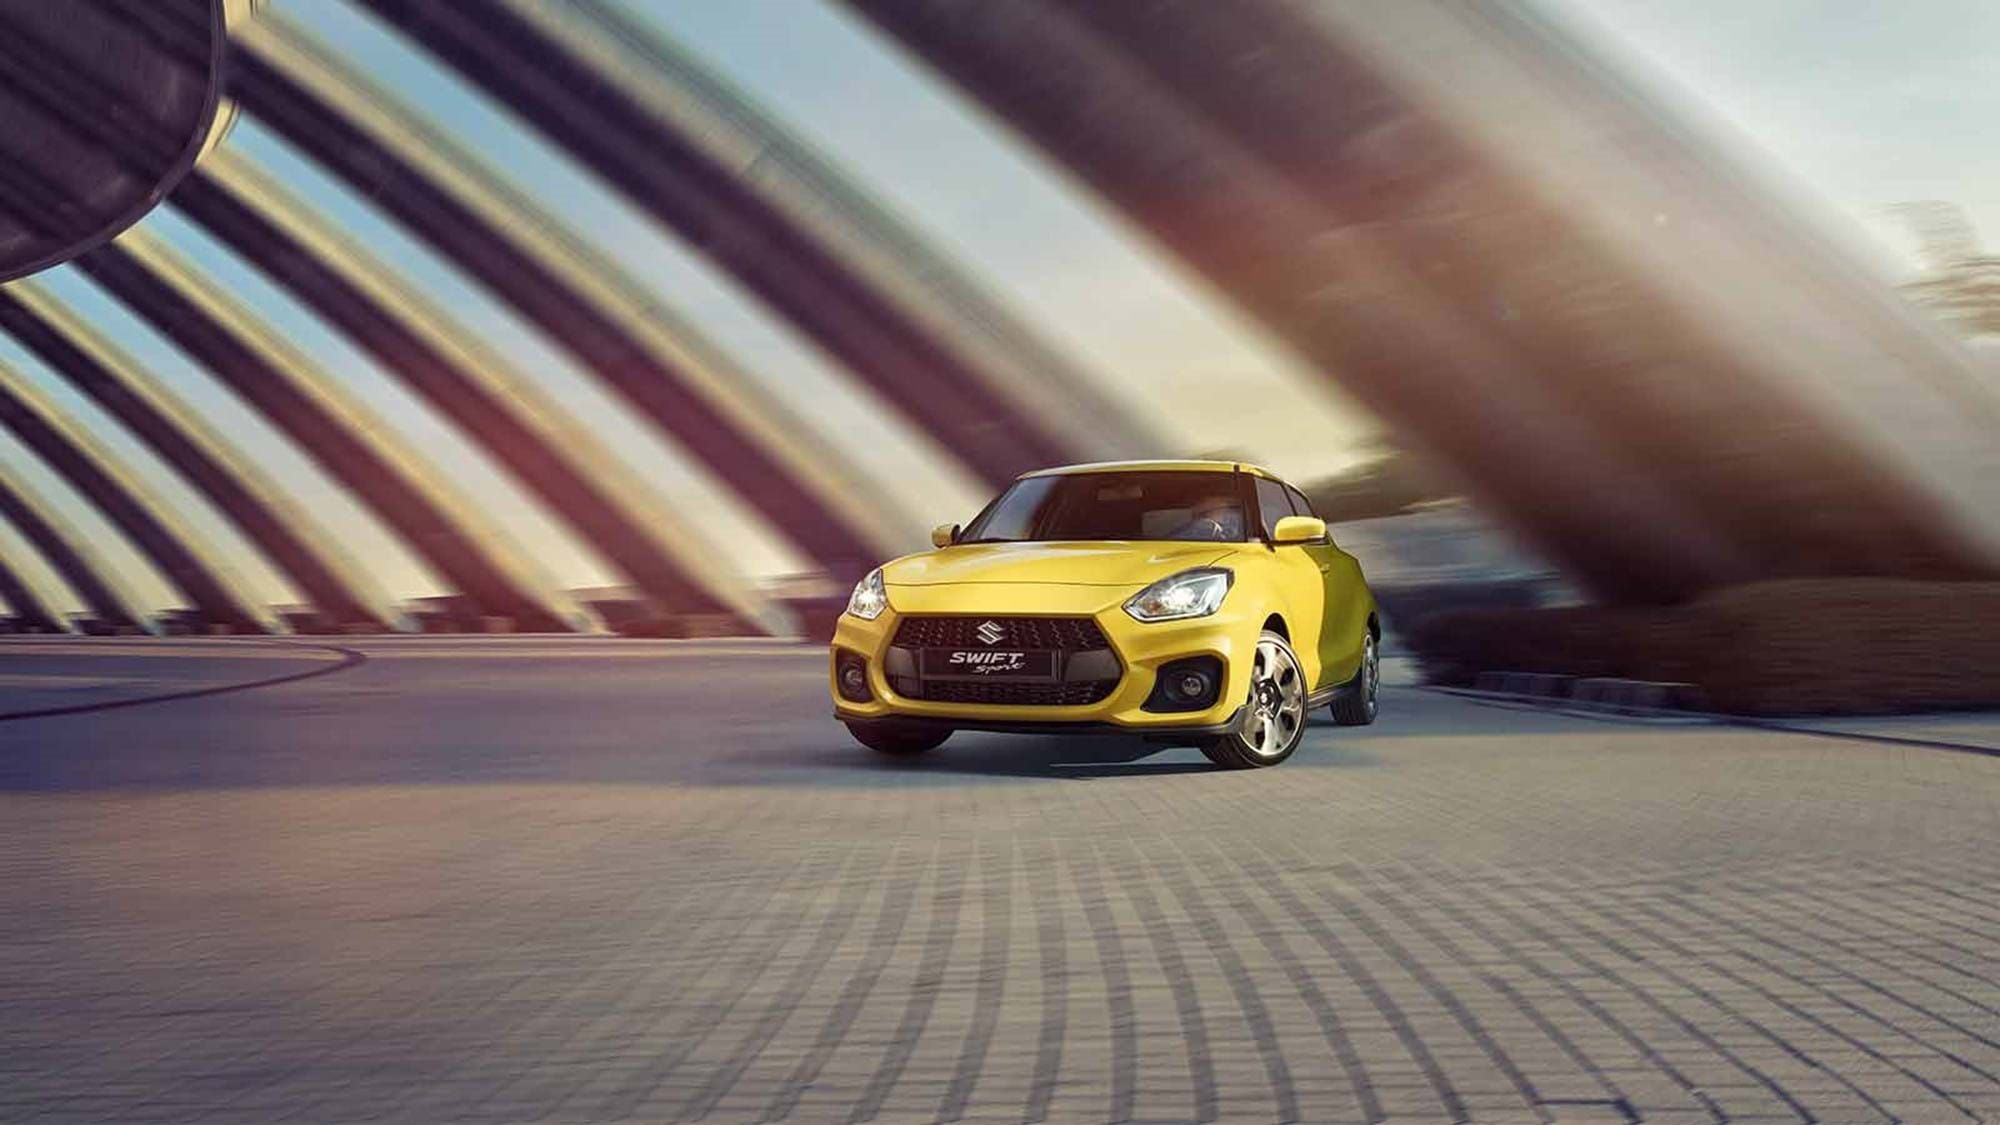 New Swift Sport launches with £16,499 offer for June